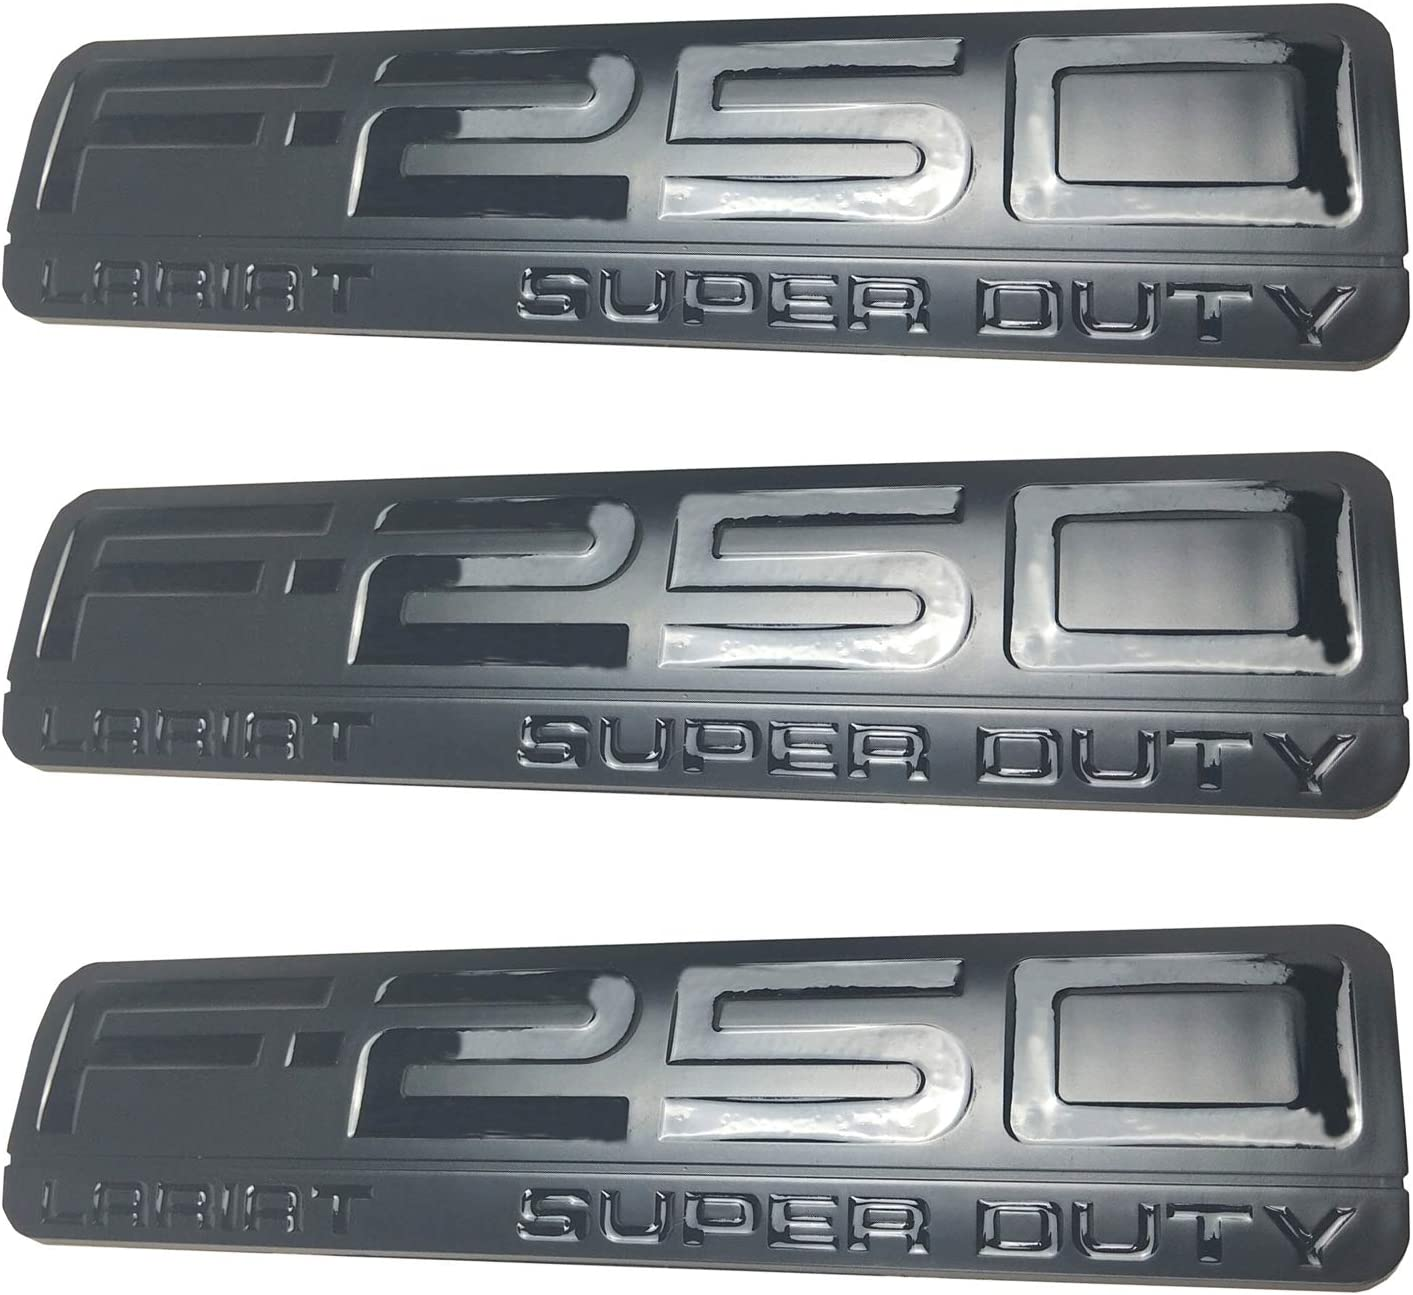 3pack New F-250 Lariat Super Duty Side Fender Emblems Badge 3D Logo Replacement for F250 Lariat Black Red